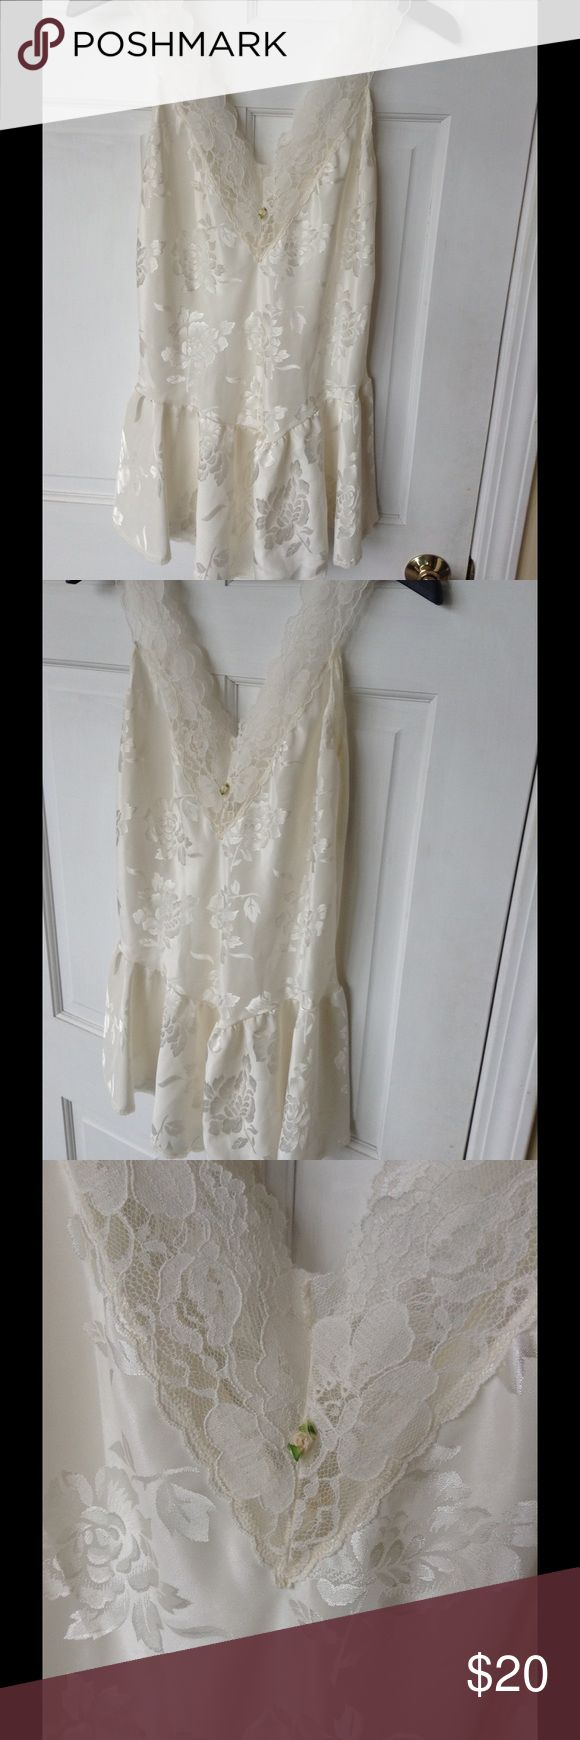 Victoria's Secret White Babydoll lingerie Absolutely stunning Victoria secret baby doll! It's just beautiful in so many ways size small. In excellent condition you will love it! Victoria's Secret Intimates & Sleepwear Chemises & Slips